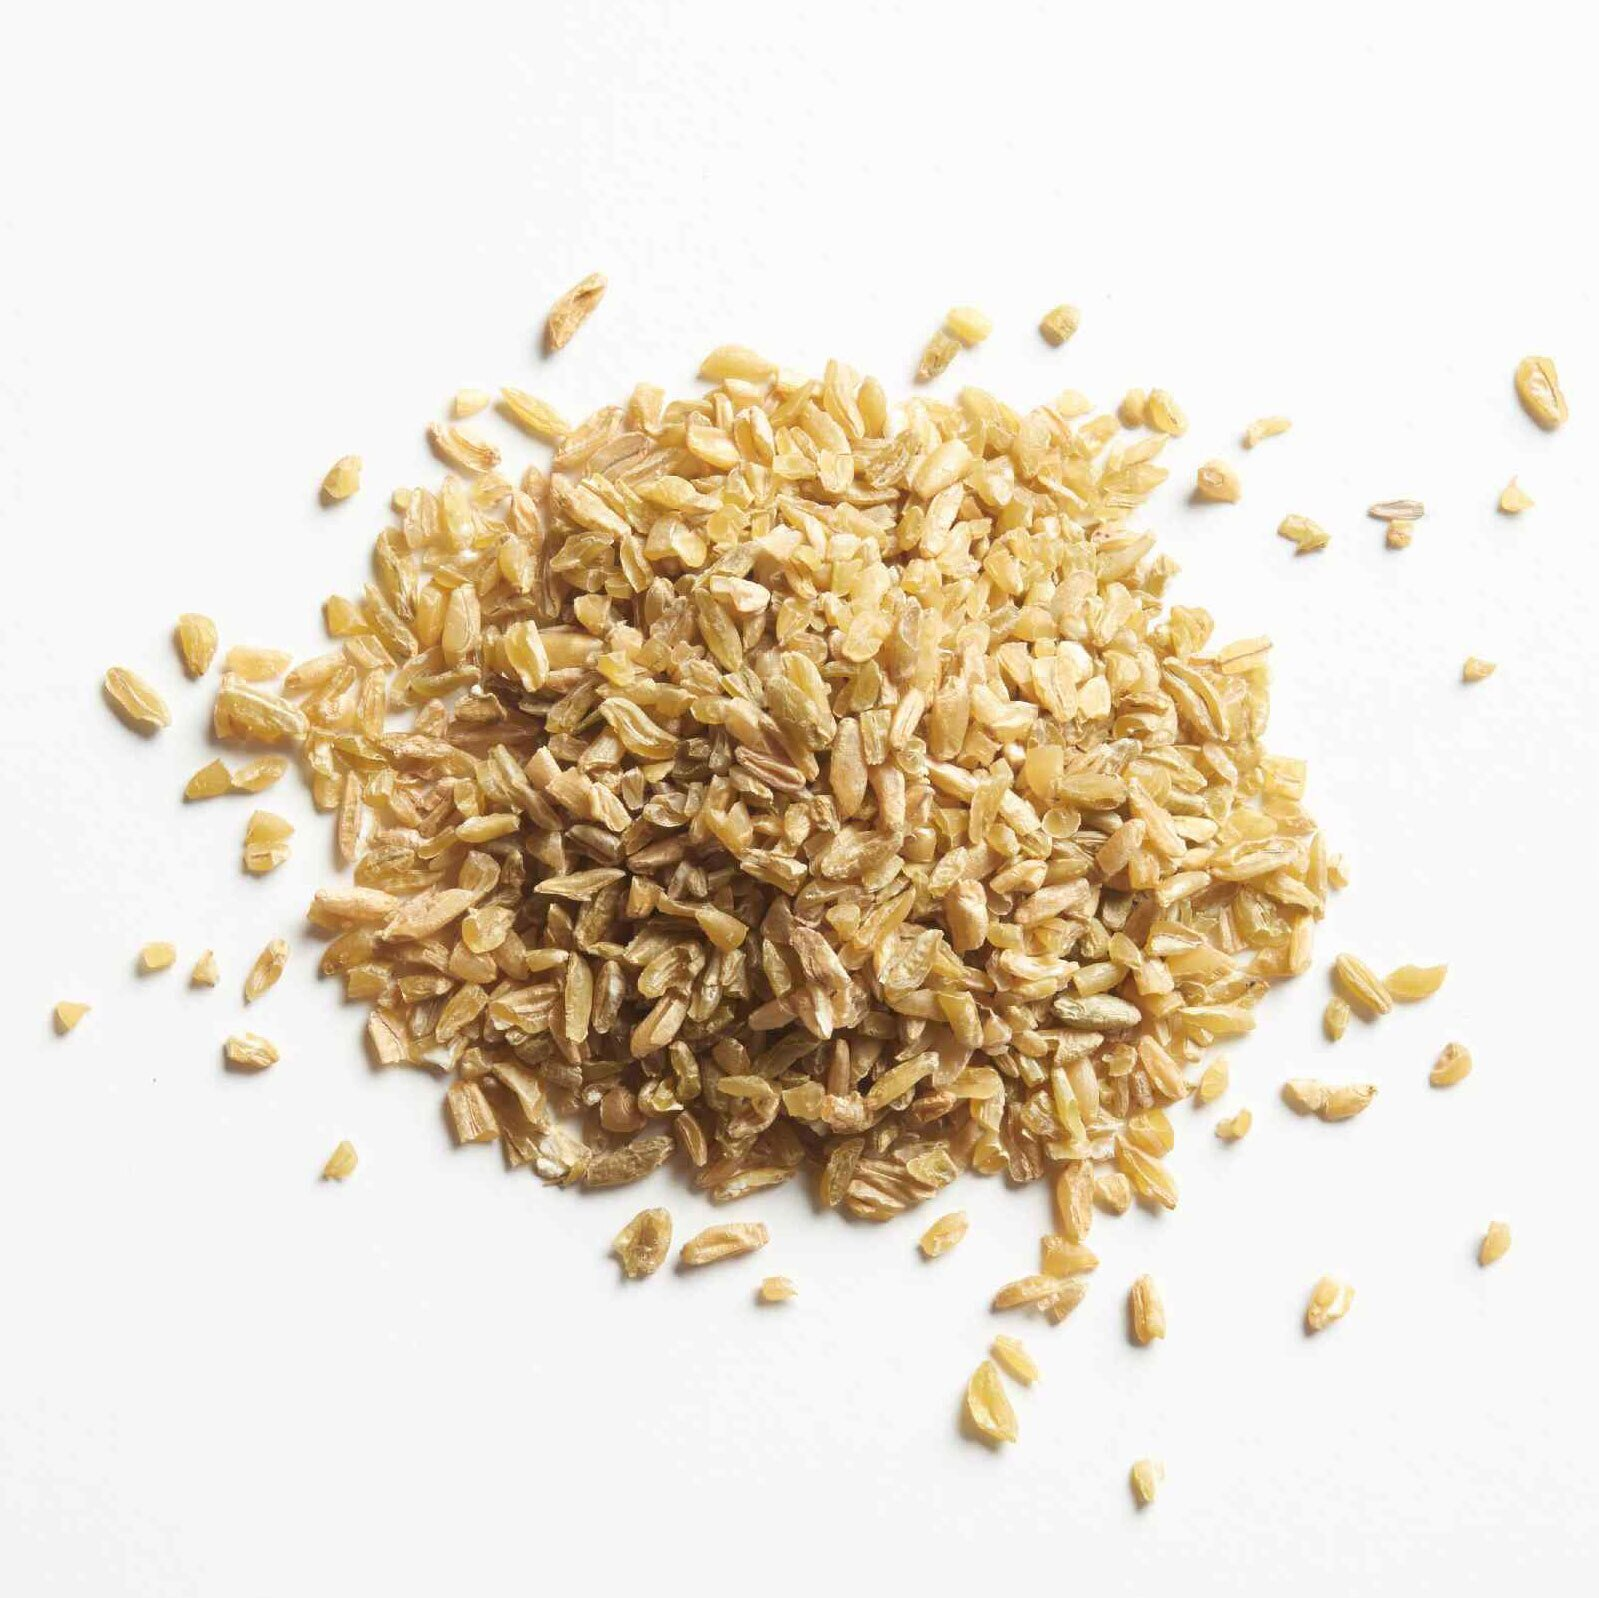 Dried freekeh grains on a white surface.